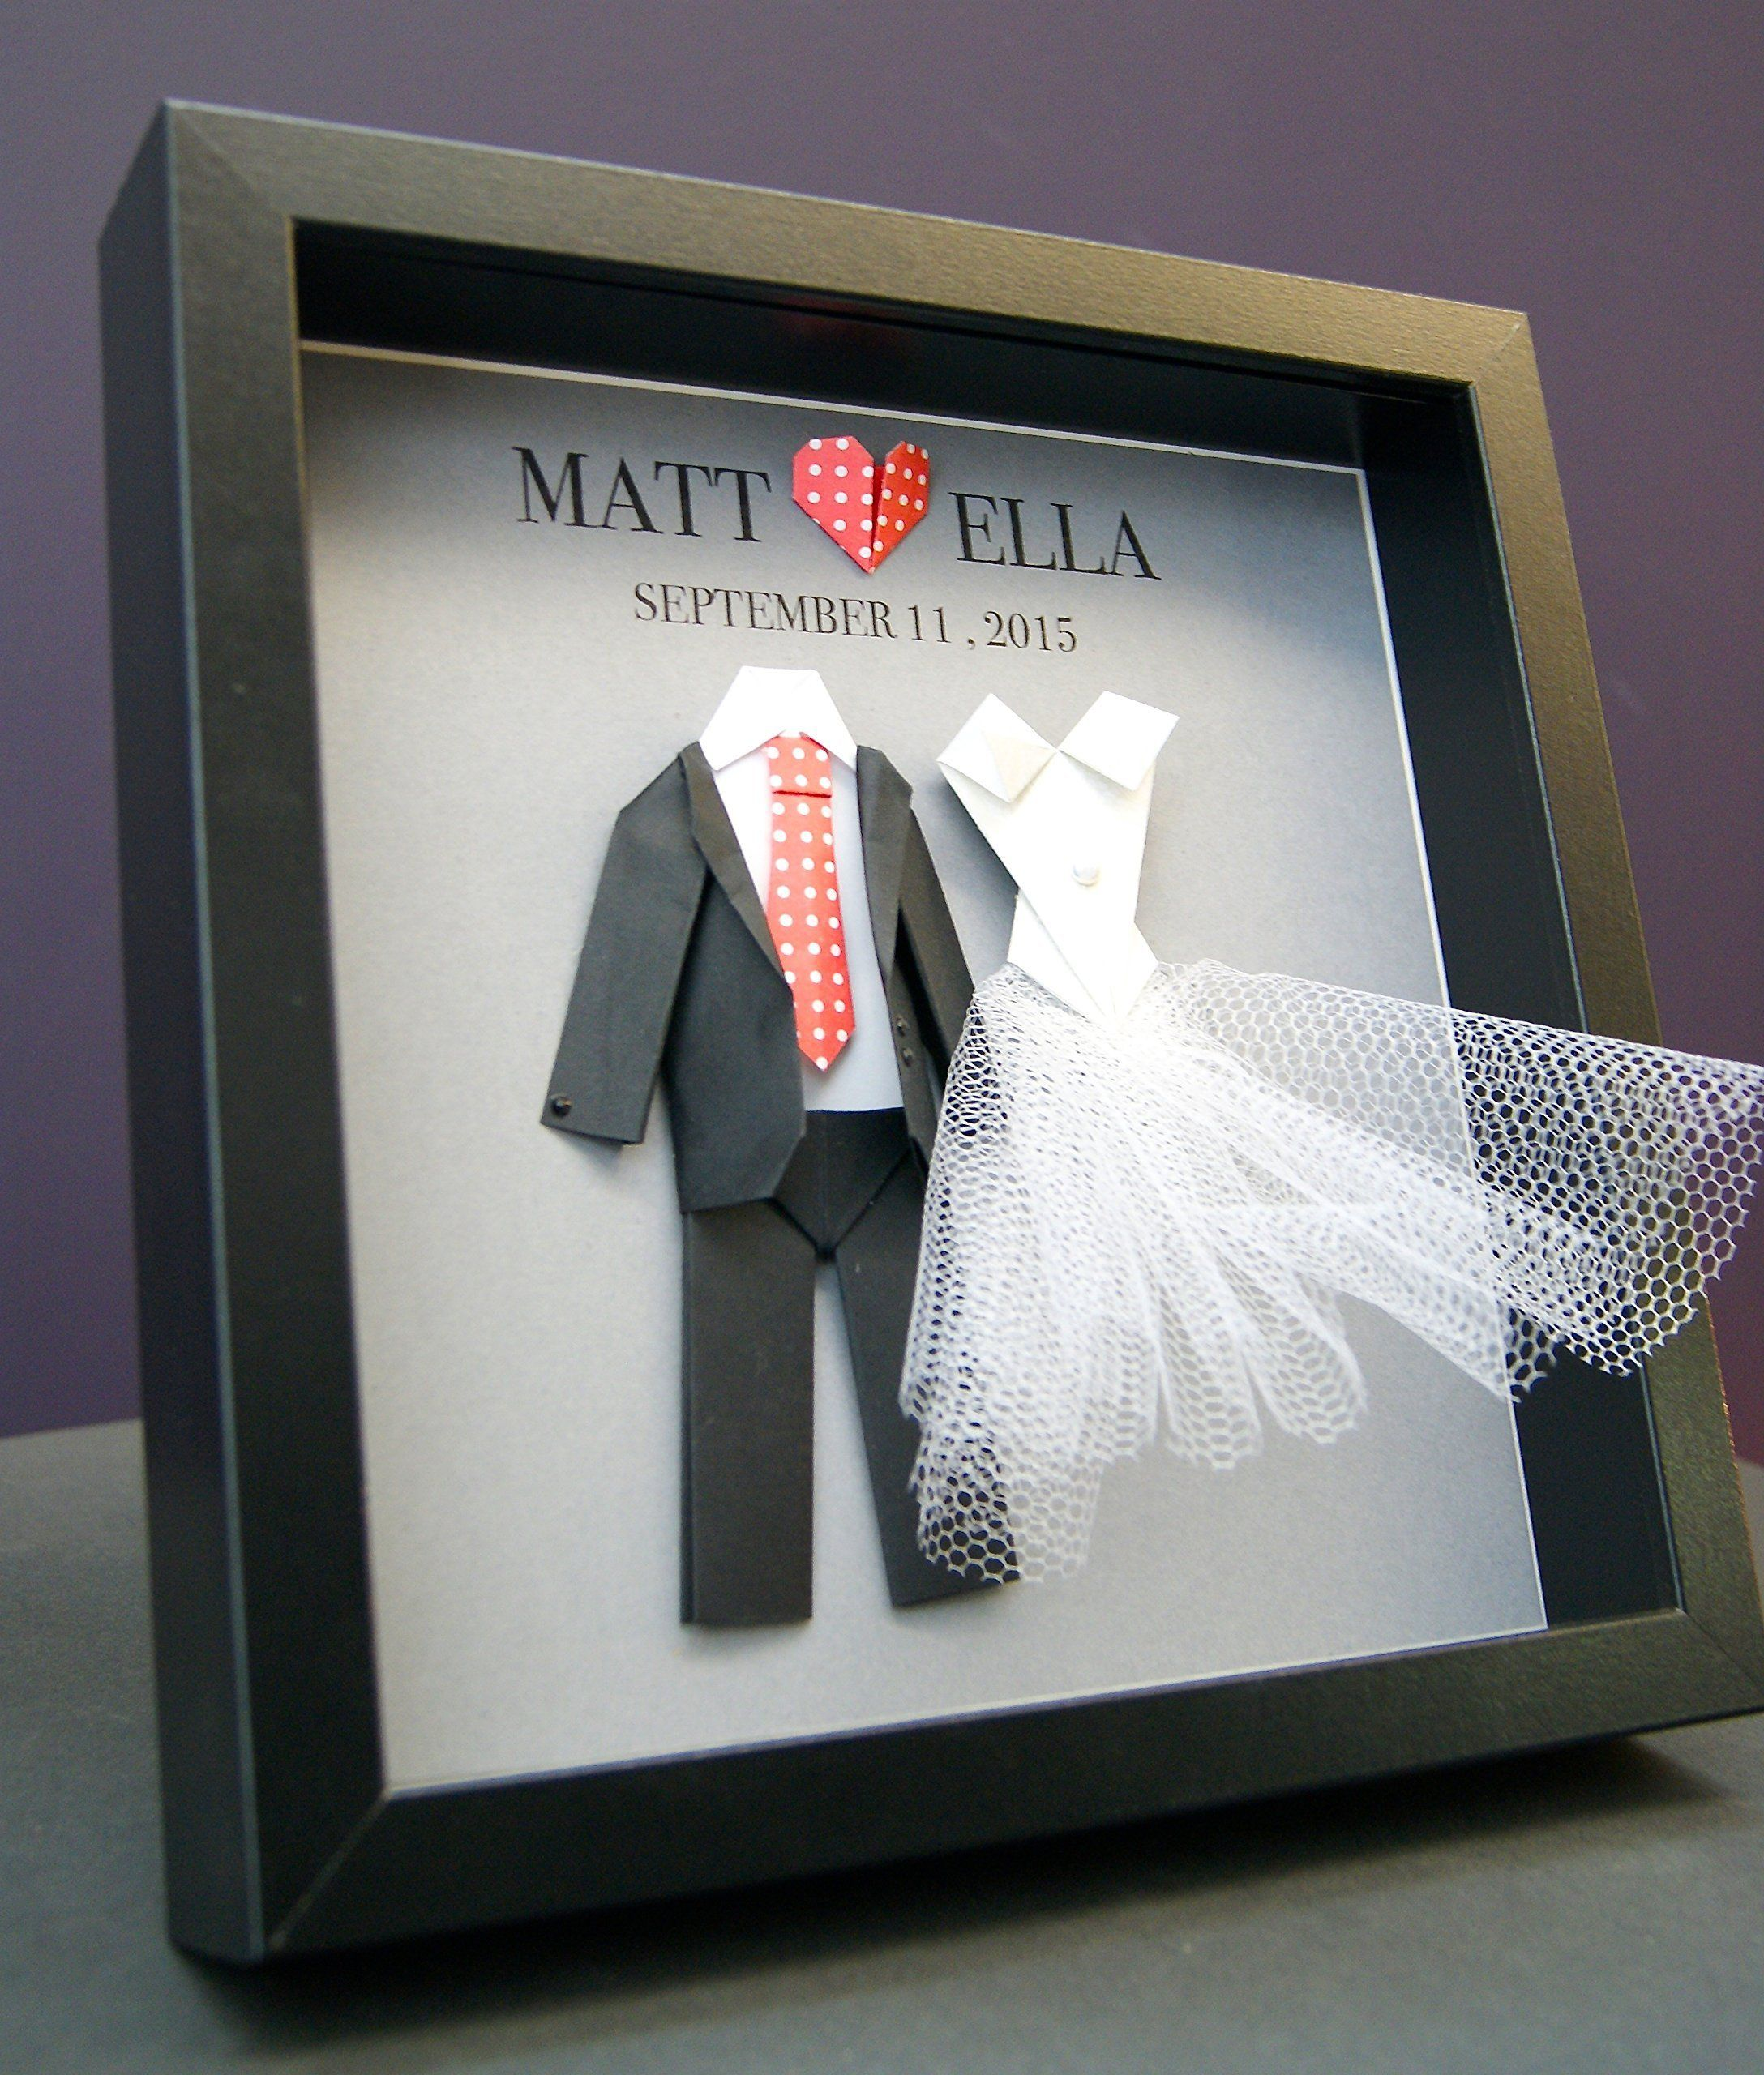 Origami Paper Bride Groom Wedding Engagement Anniversary Gift Shadowbox Frame This Personalized